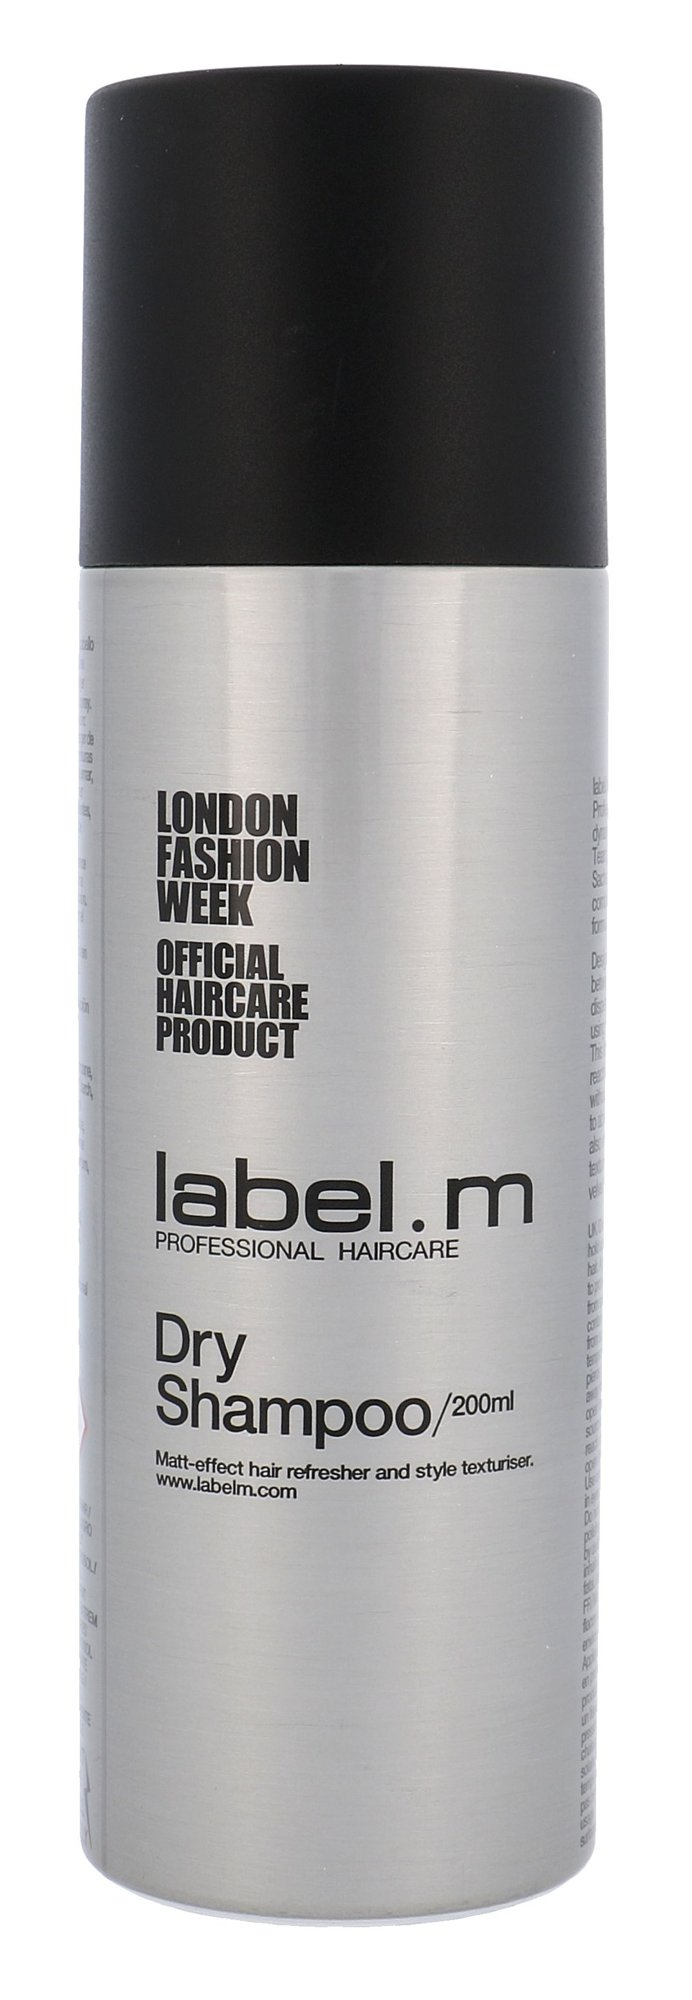 Label m Dry Shampoo Cosmetic 200ml